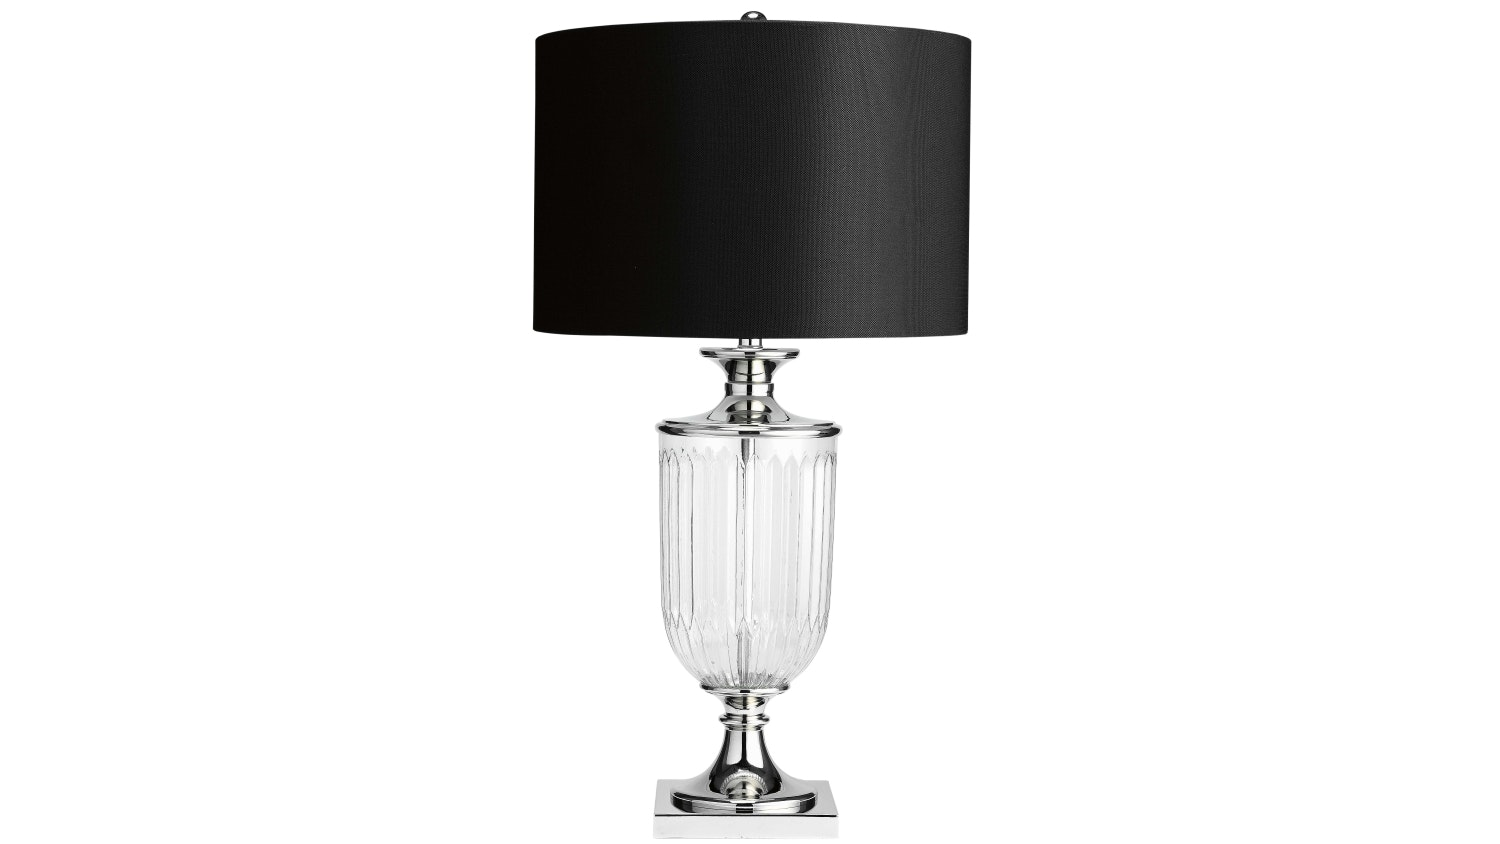 Captivating Ornate Glass Table Lamp